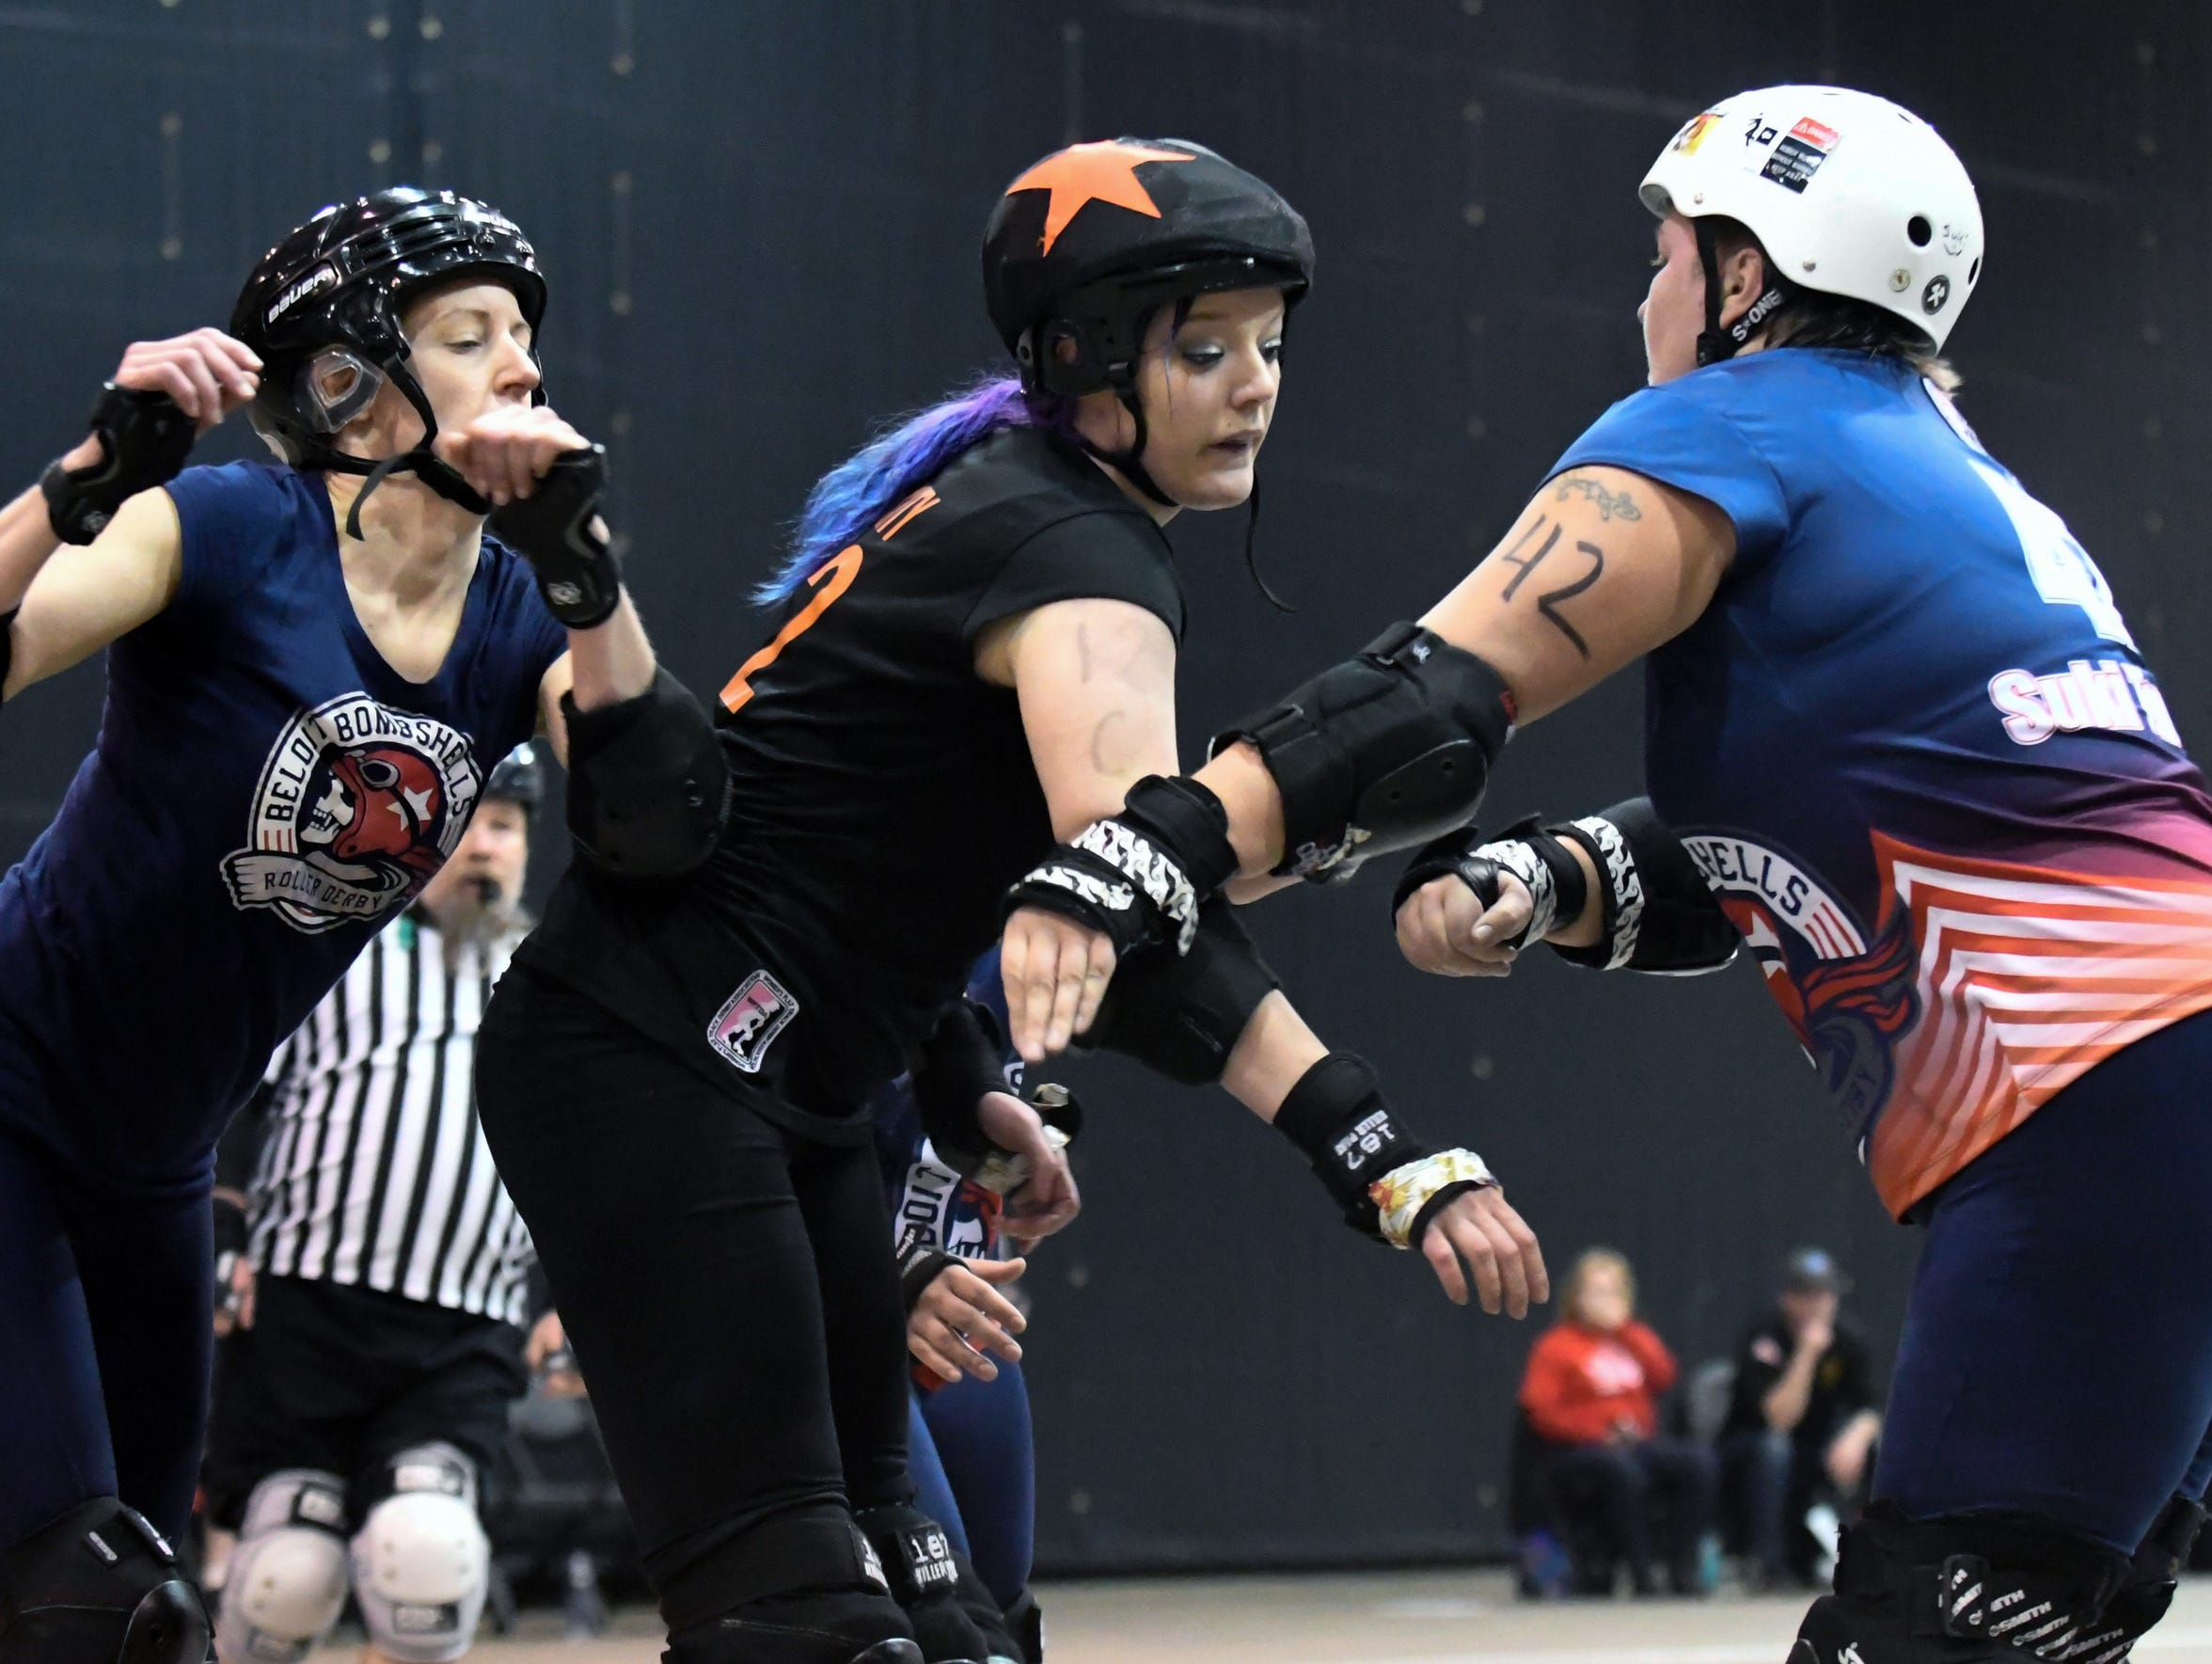 Cynthia 'Cyn City' Rink is a jammer for the Battle